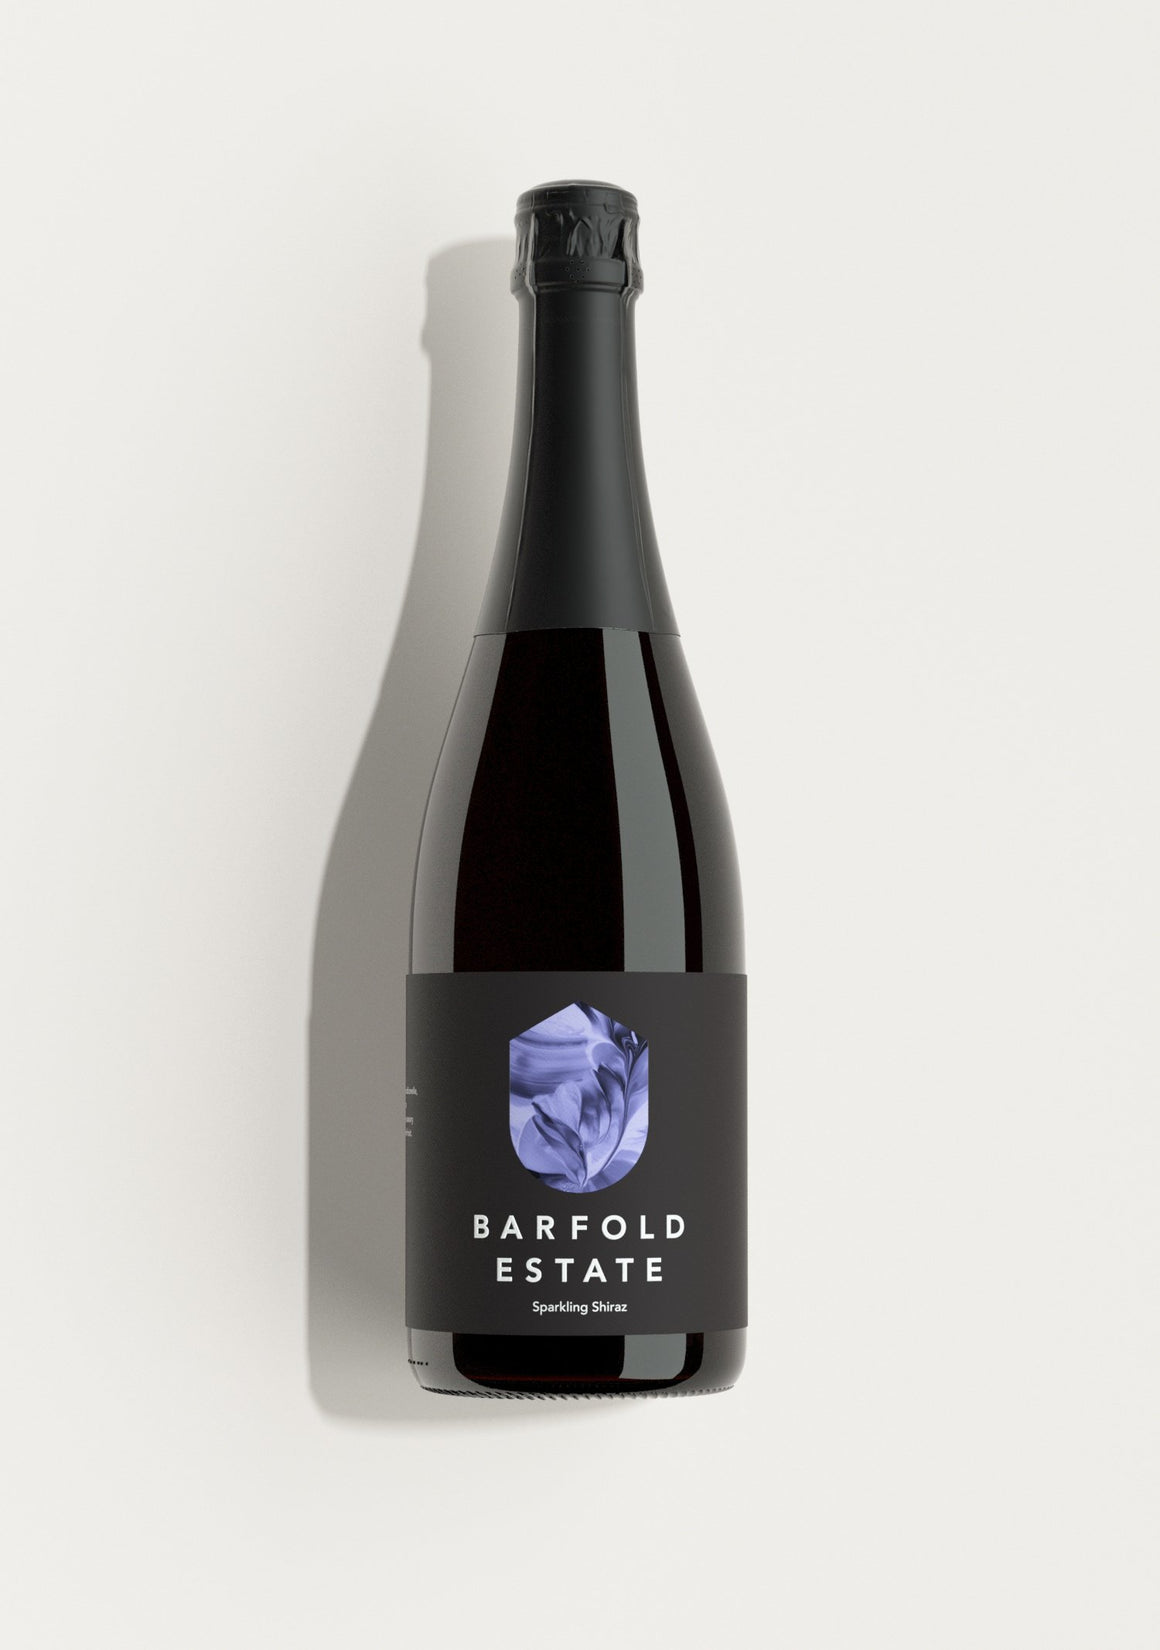 Barfold Estate Sparkling Shiraz NV